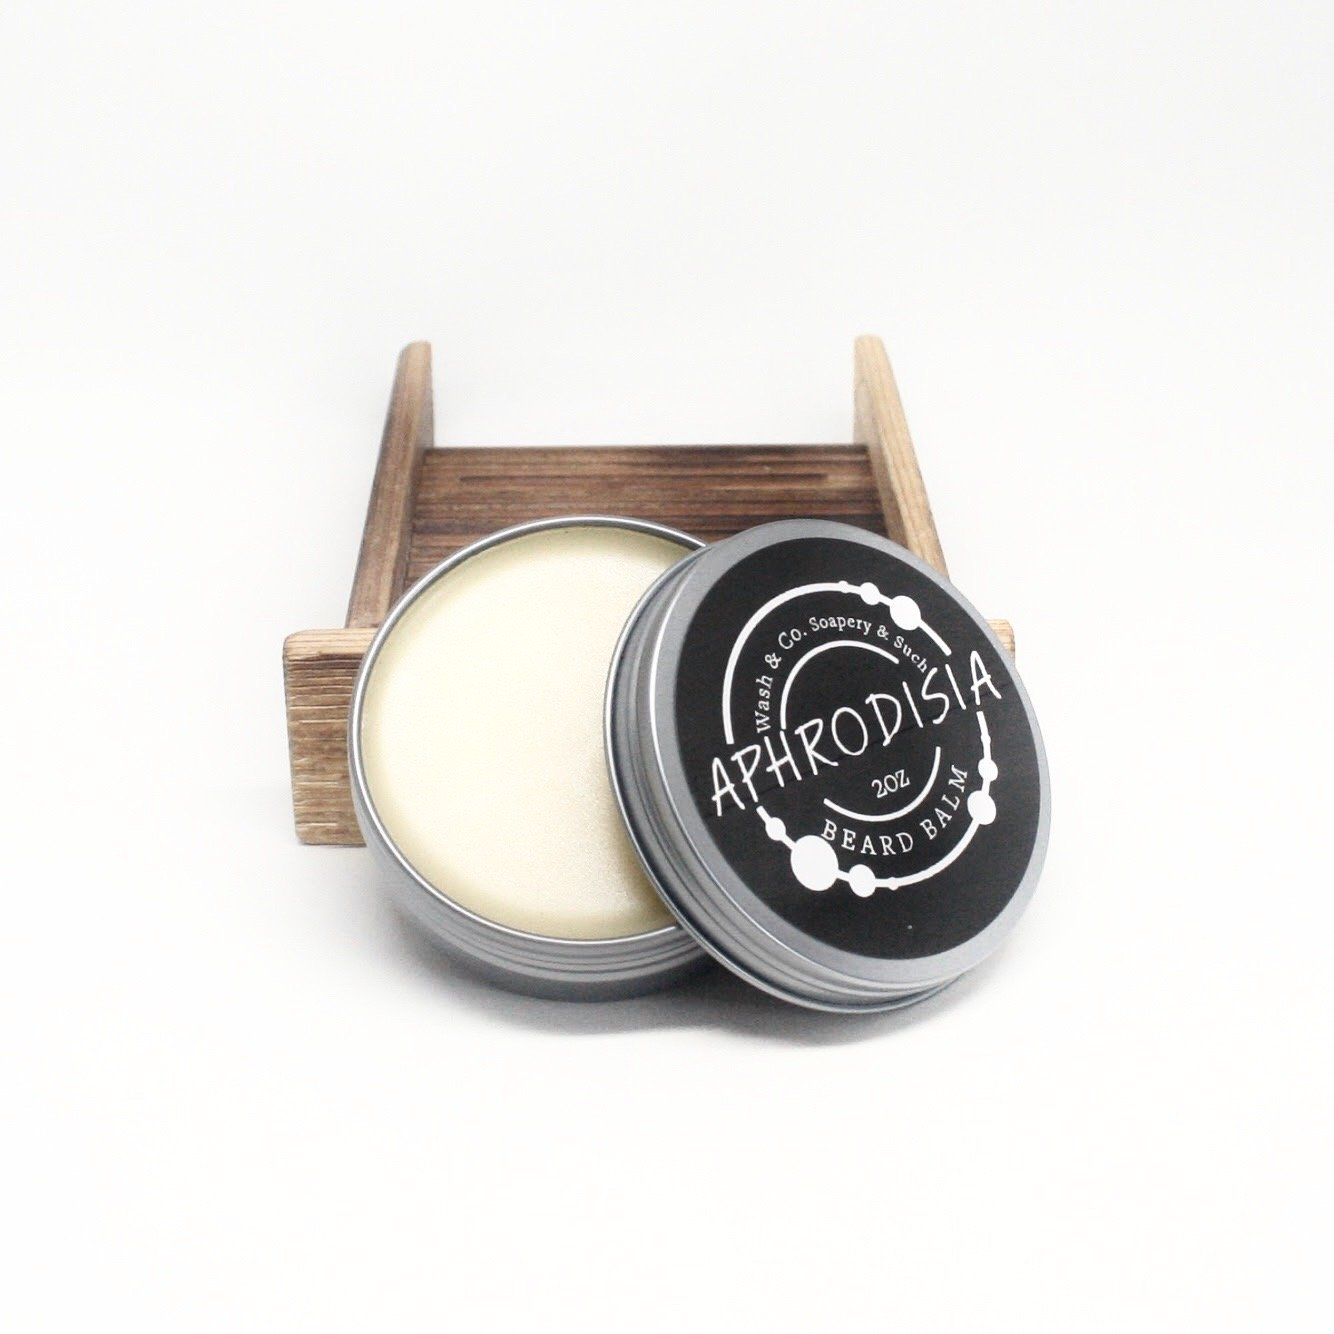 Beard Balm Aphrodisia 2oz Tin